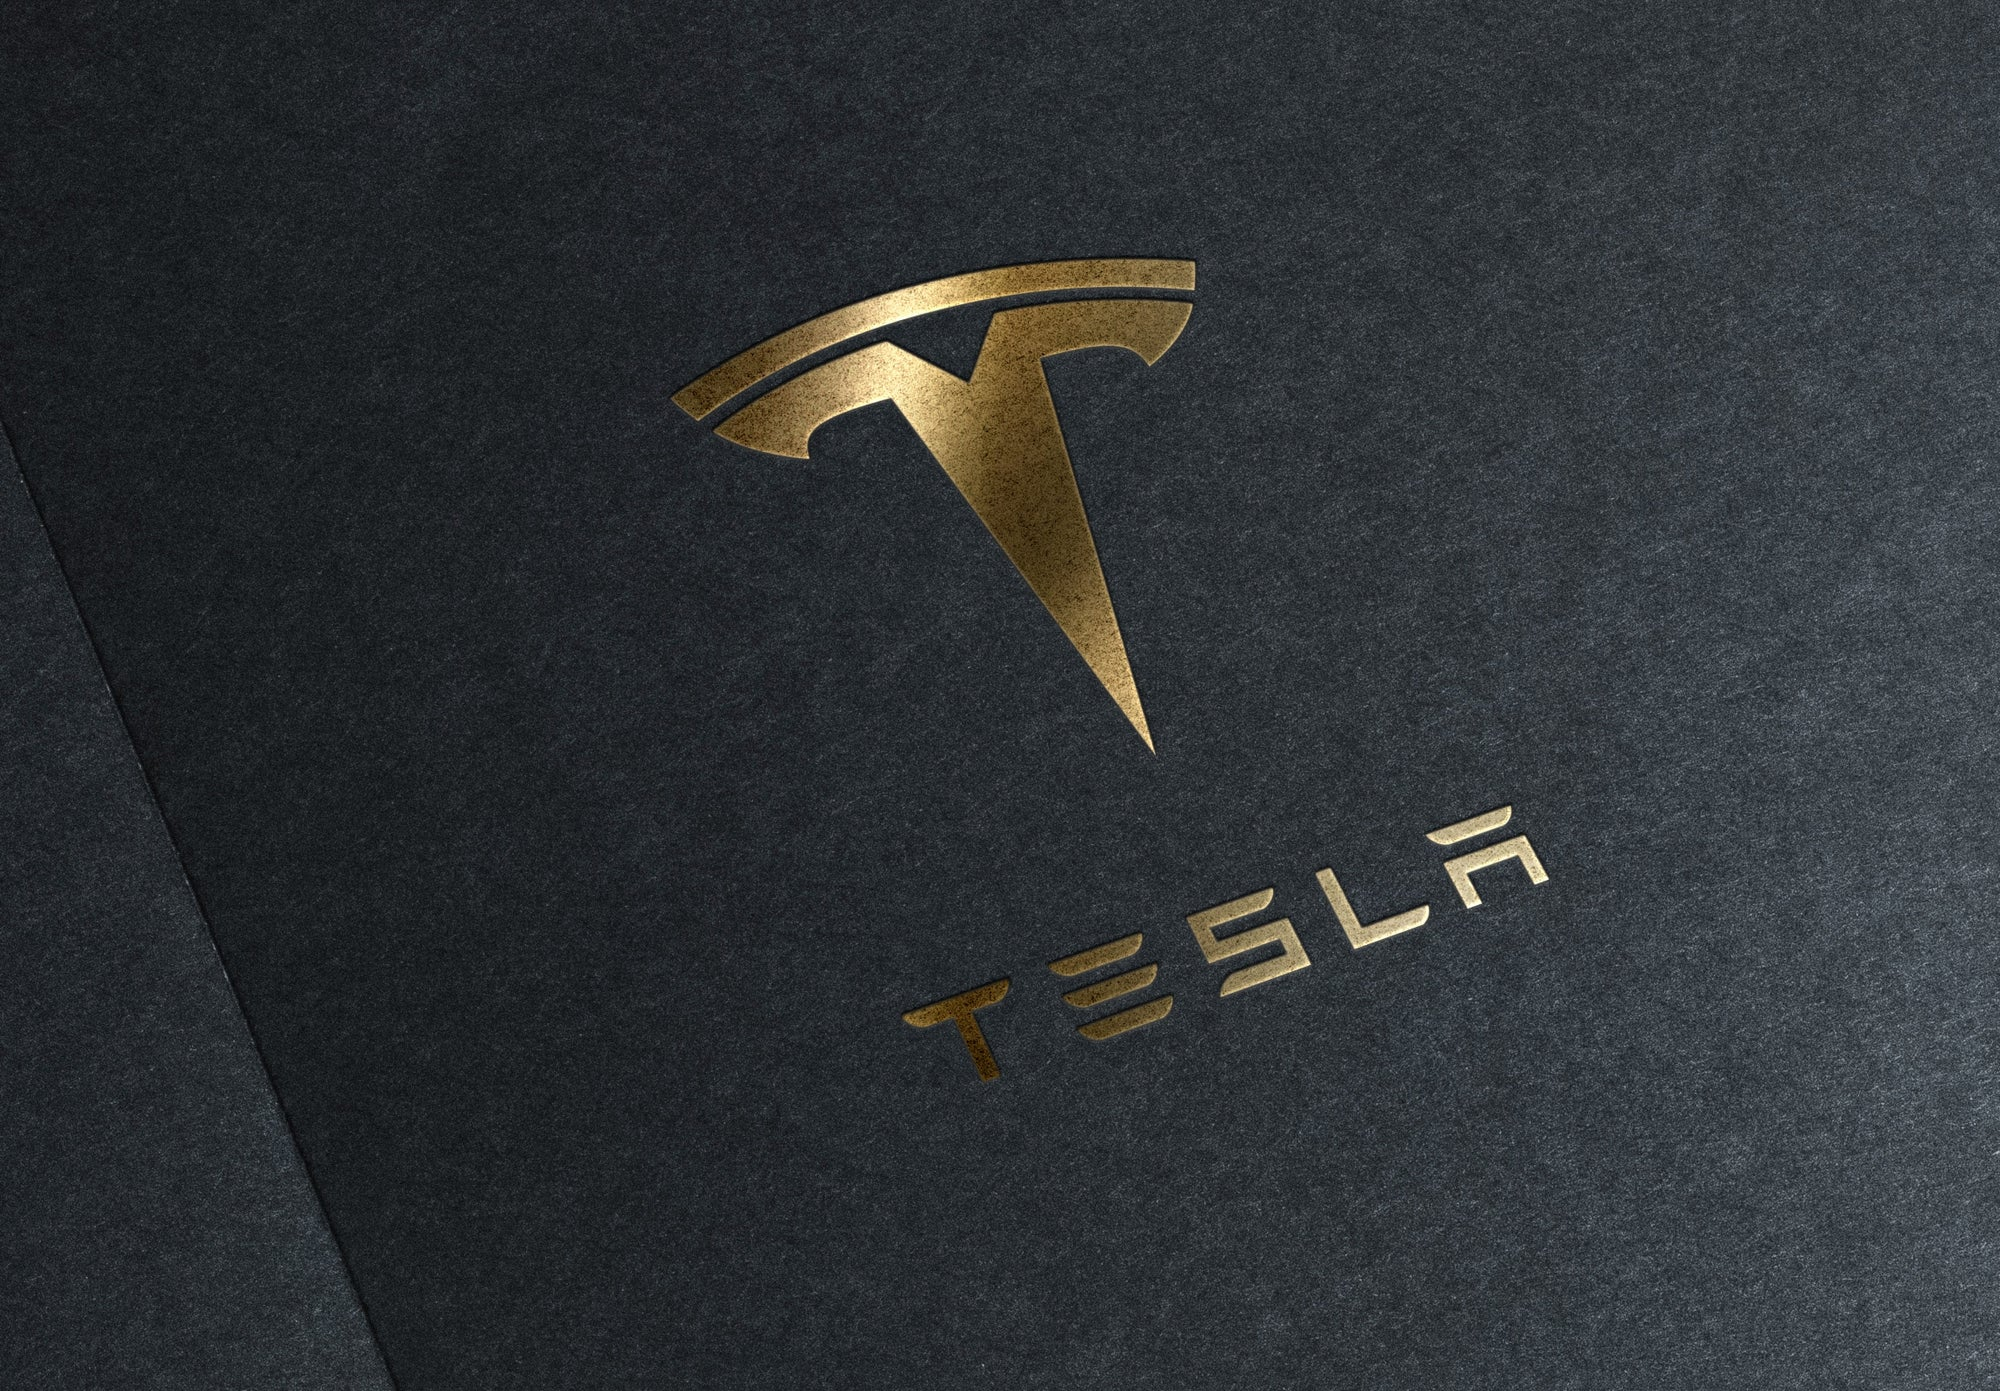 Tesla Annual Revenue Will Surpass $100B by 2025, Says Gerber Kawasaki's Investment Management